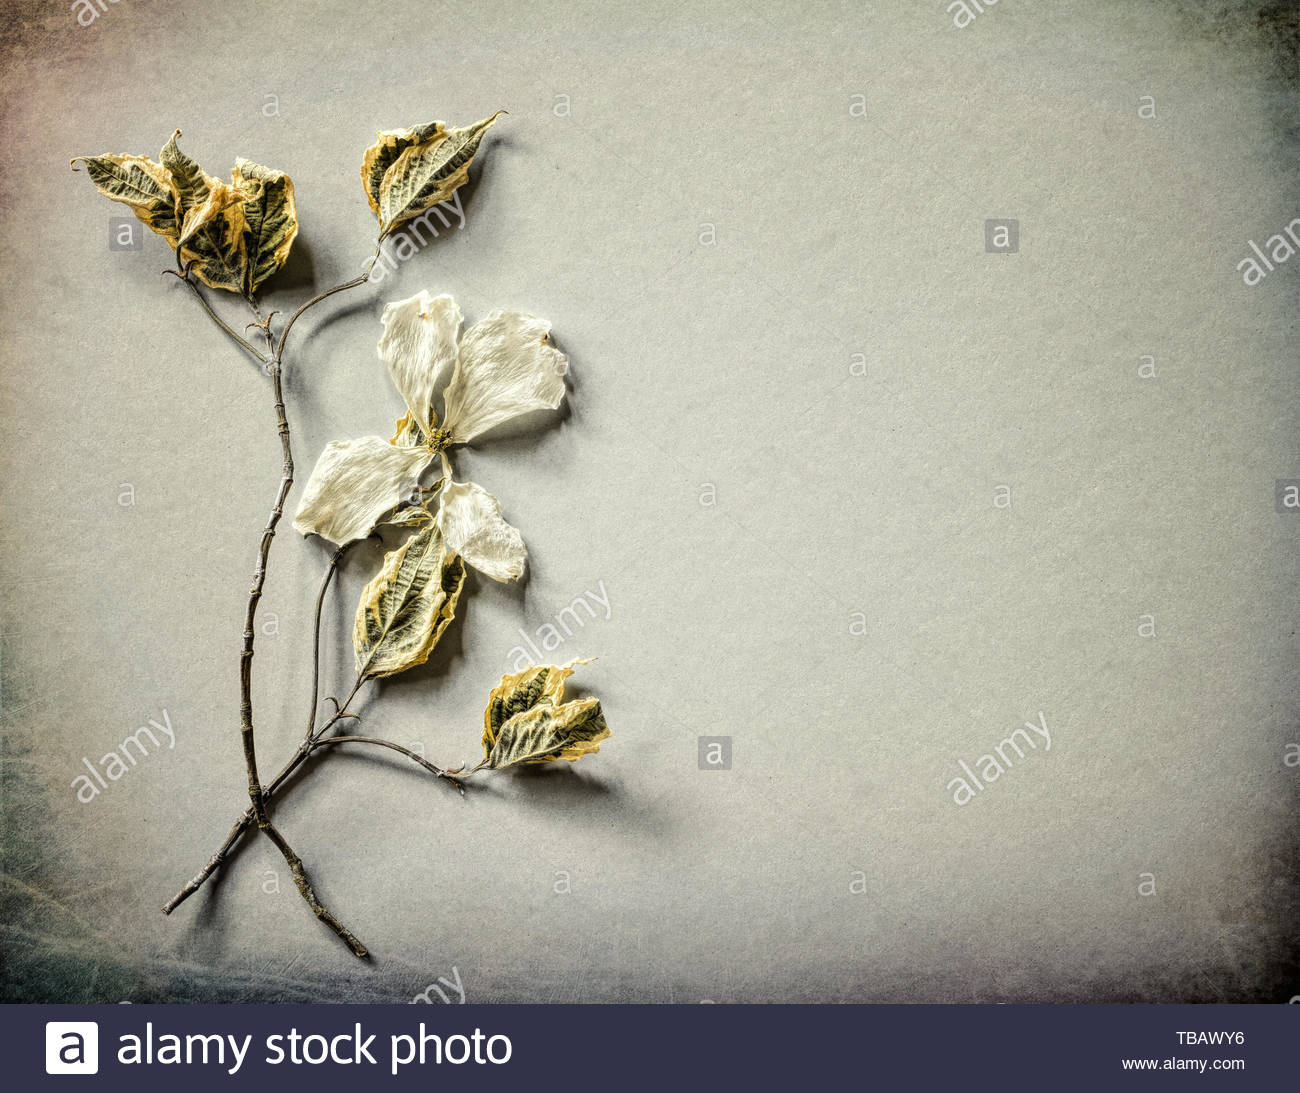 Gray Card with Dried White Dogwood Flower, leaves and stems on gray paper background with room or space for copy, text or your words.  Horizontal with - Stock Image